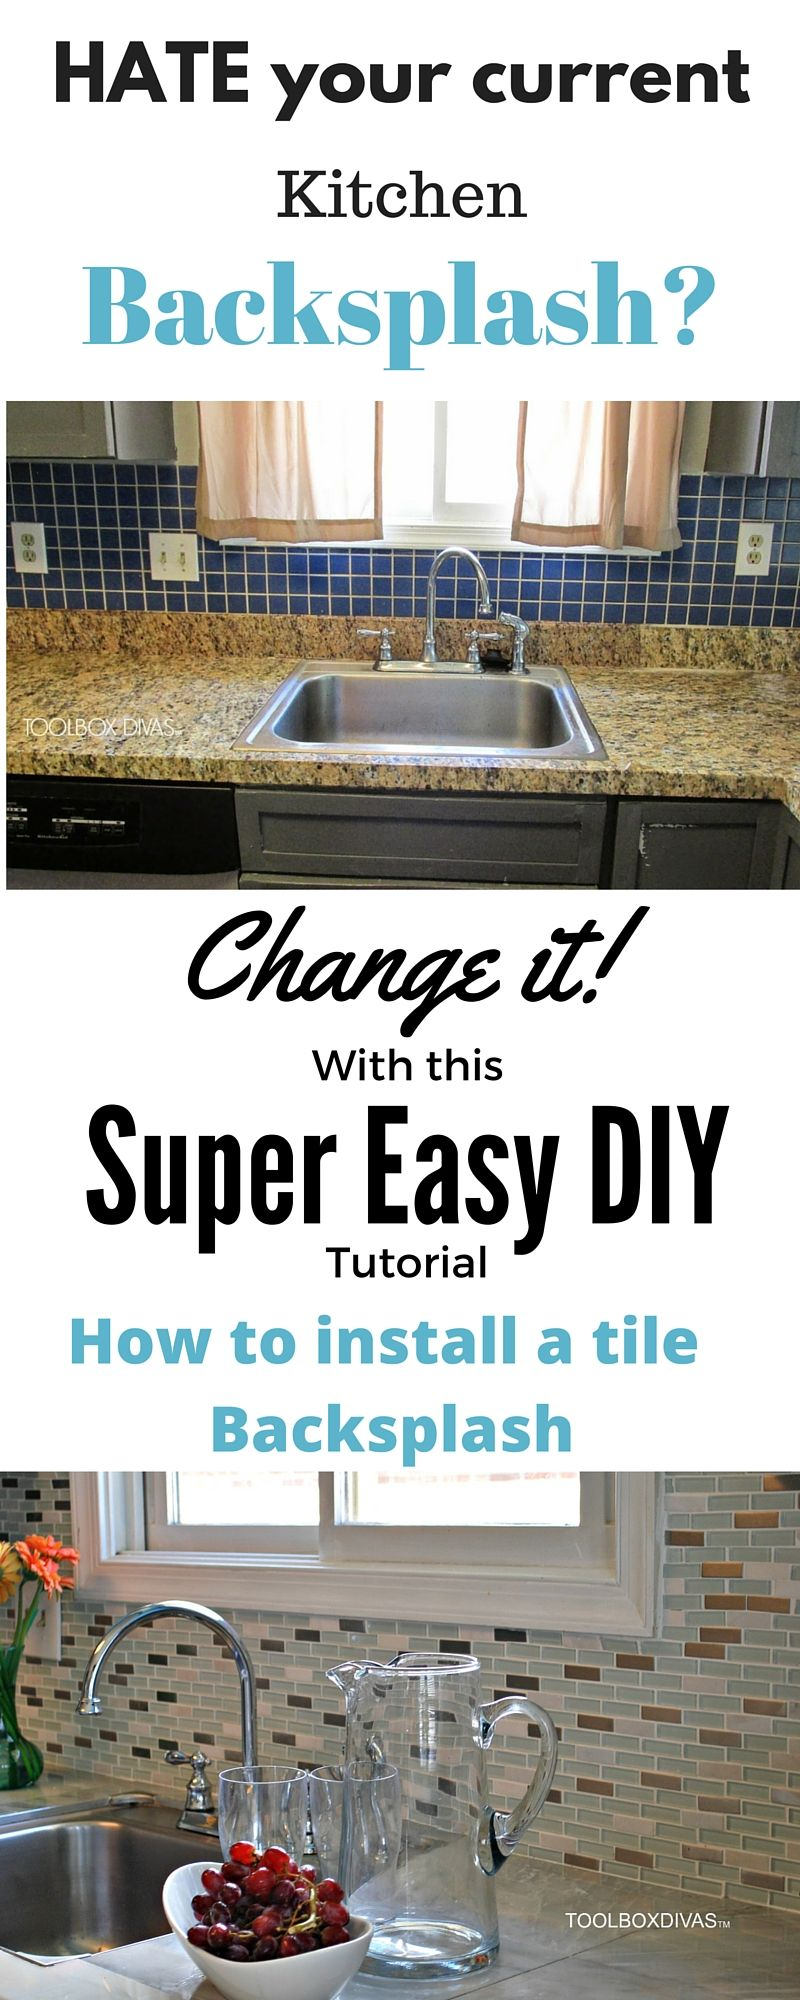 How to install a kitchen tile backsplash the easy way kitchen how to install a kitchen tile backsplash the easy way dailygadgetfo Image collections